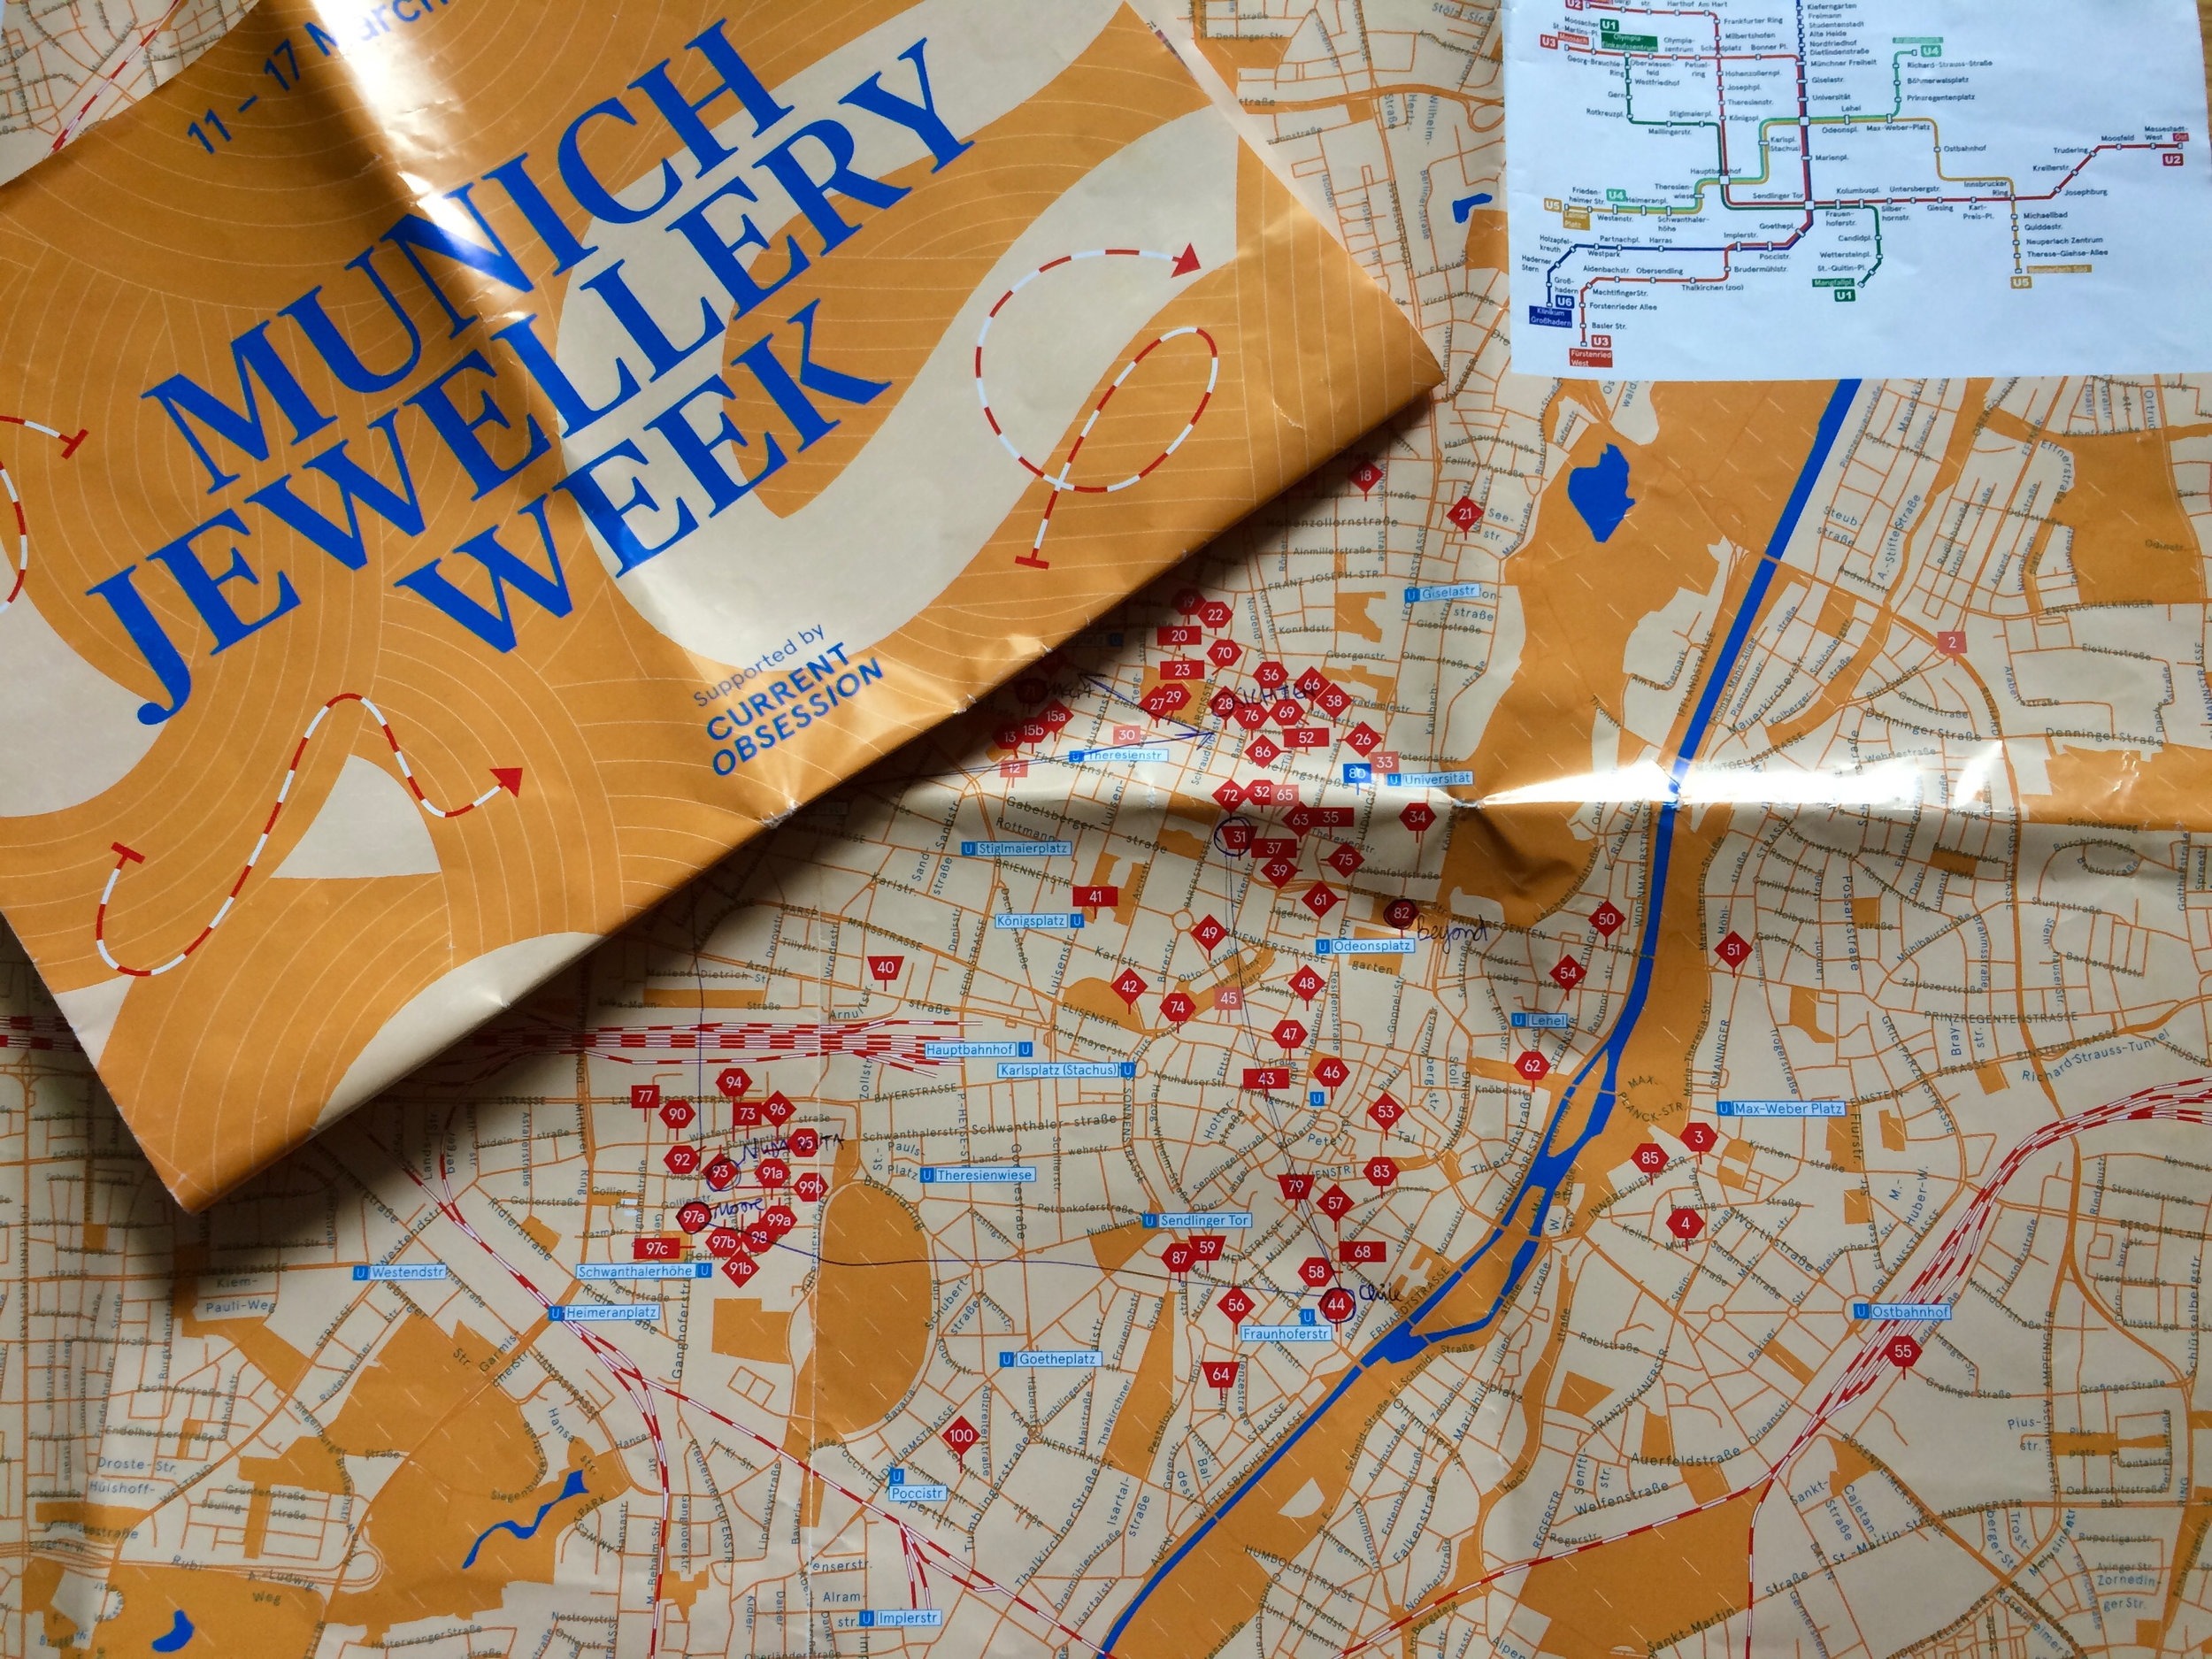 Current Obsession map of all the different locations at Munich Jewellery Week, and my constant companion. It's really quite impossible to see everything.